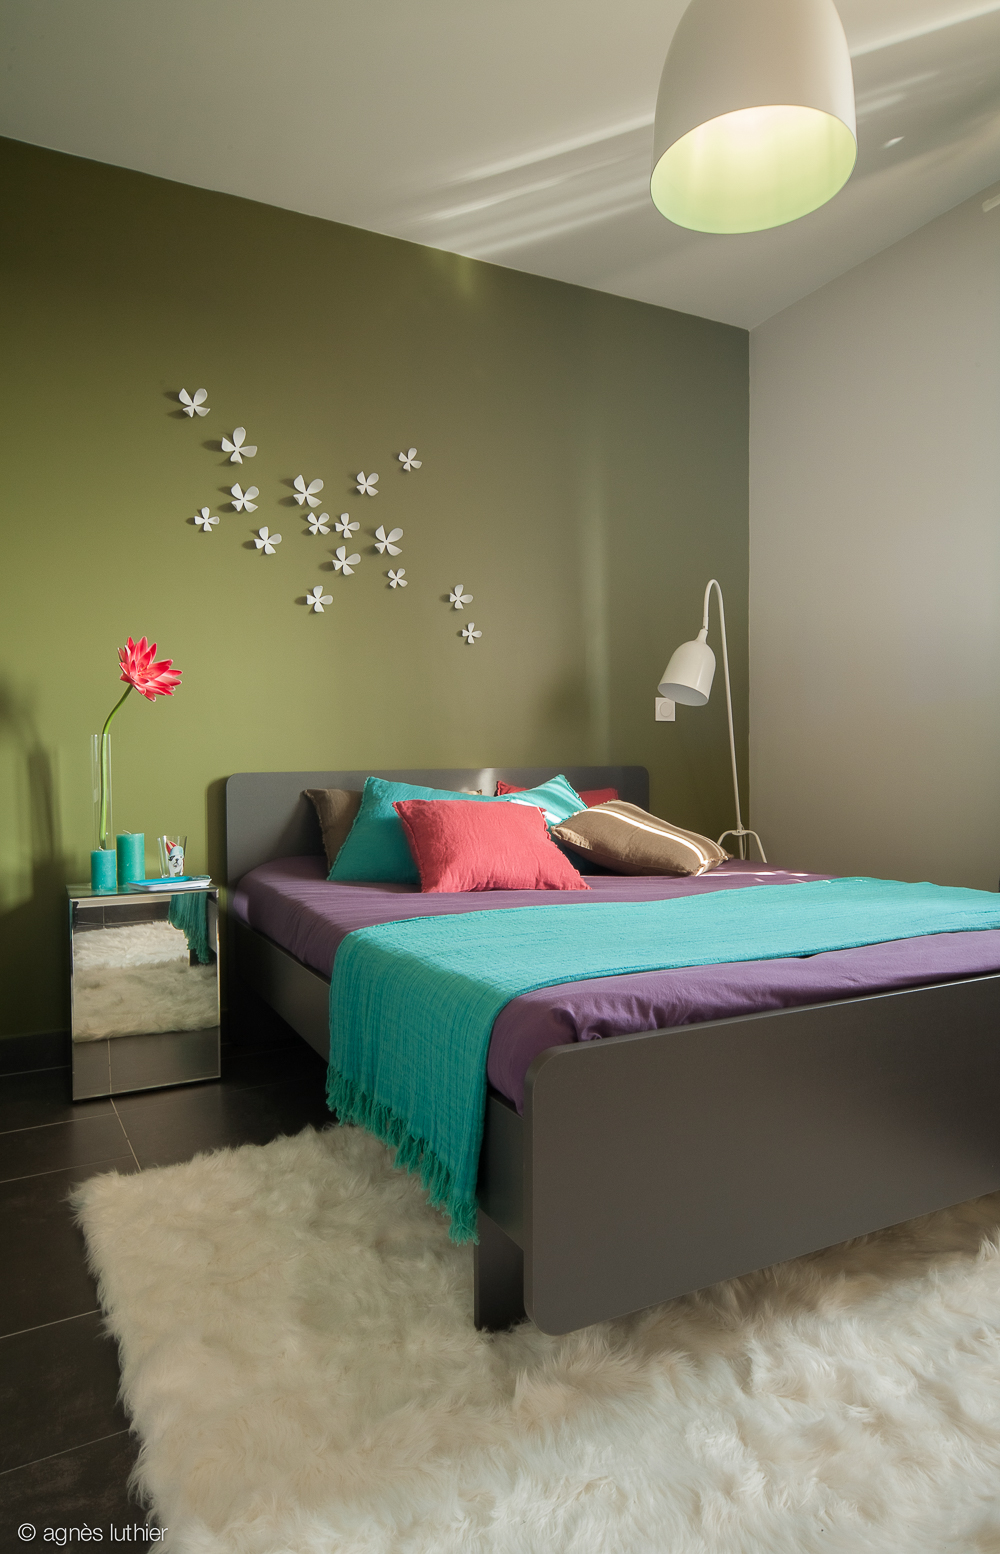 decoration interieur toulouse hd wallpapers decoration interieur toulouse with decoration. Black Bedroom Furniture Sets. Home Design Ideas